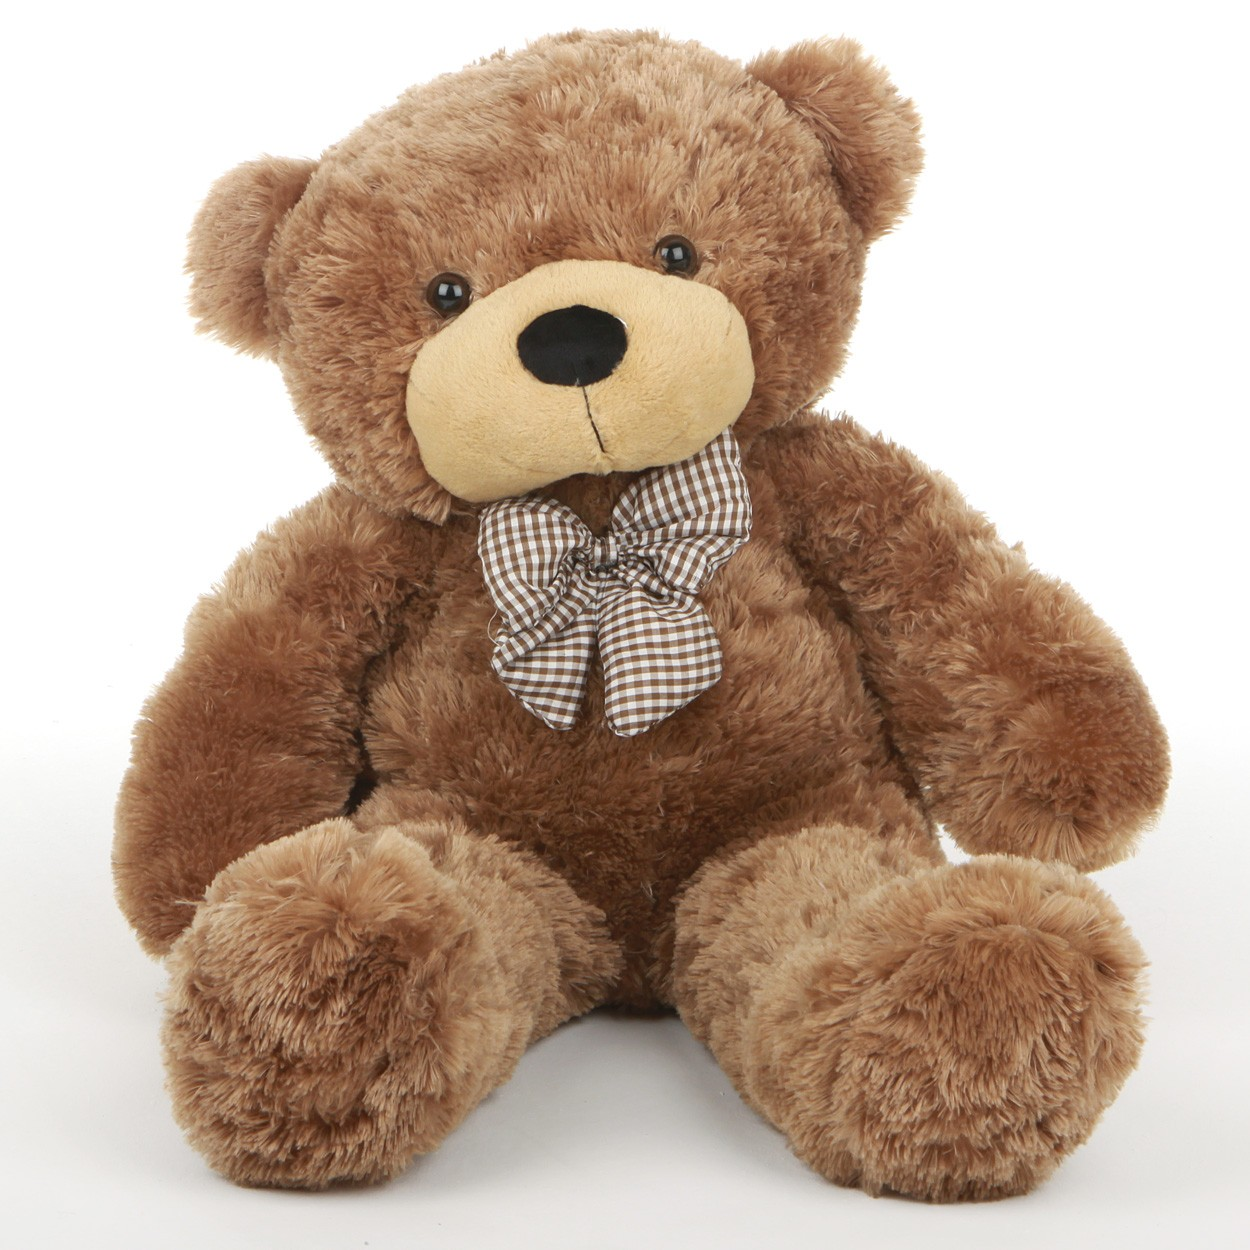 33 - Teddy Bear Soft Toy